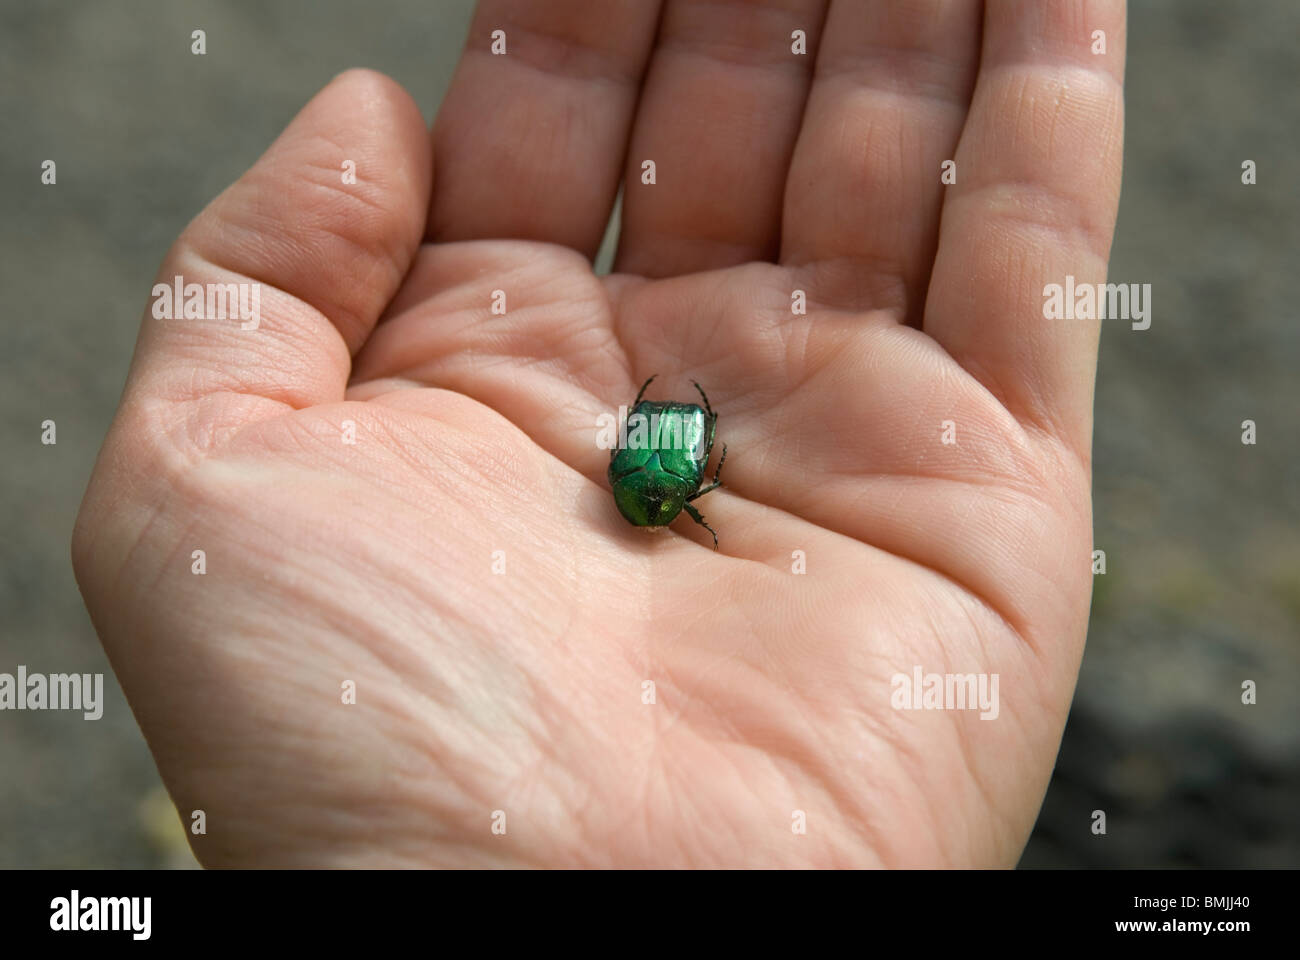 Human hand holding beetle, close-up Photo Stock